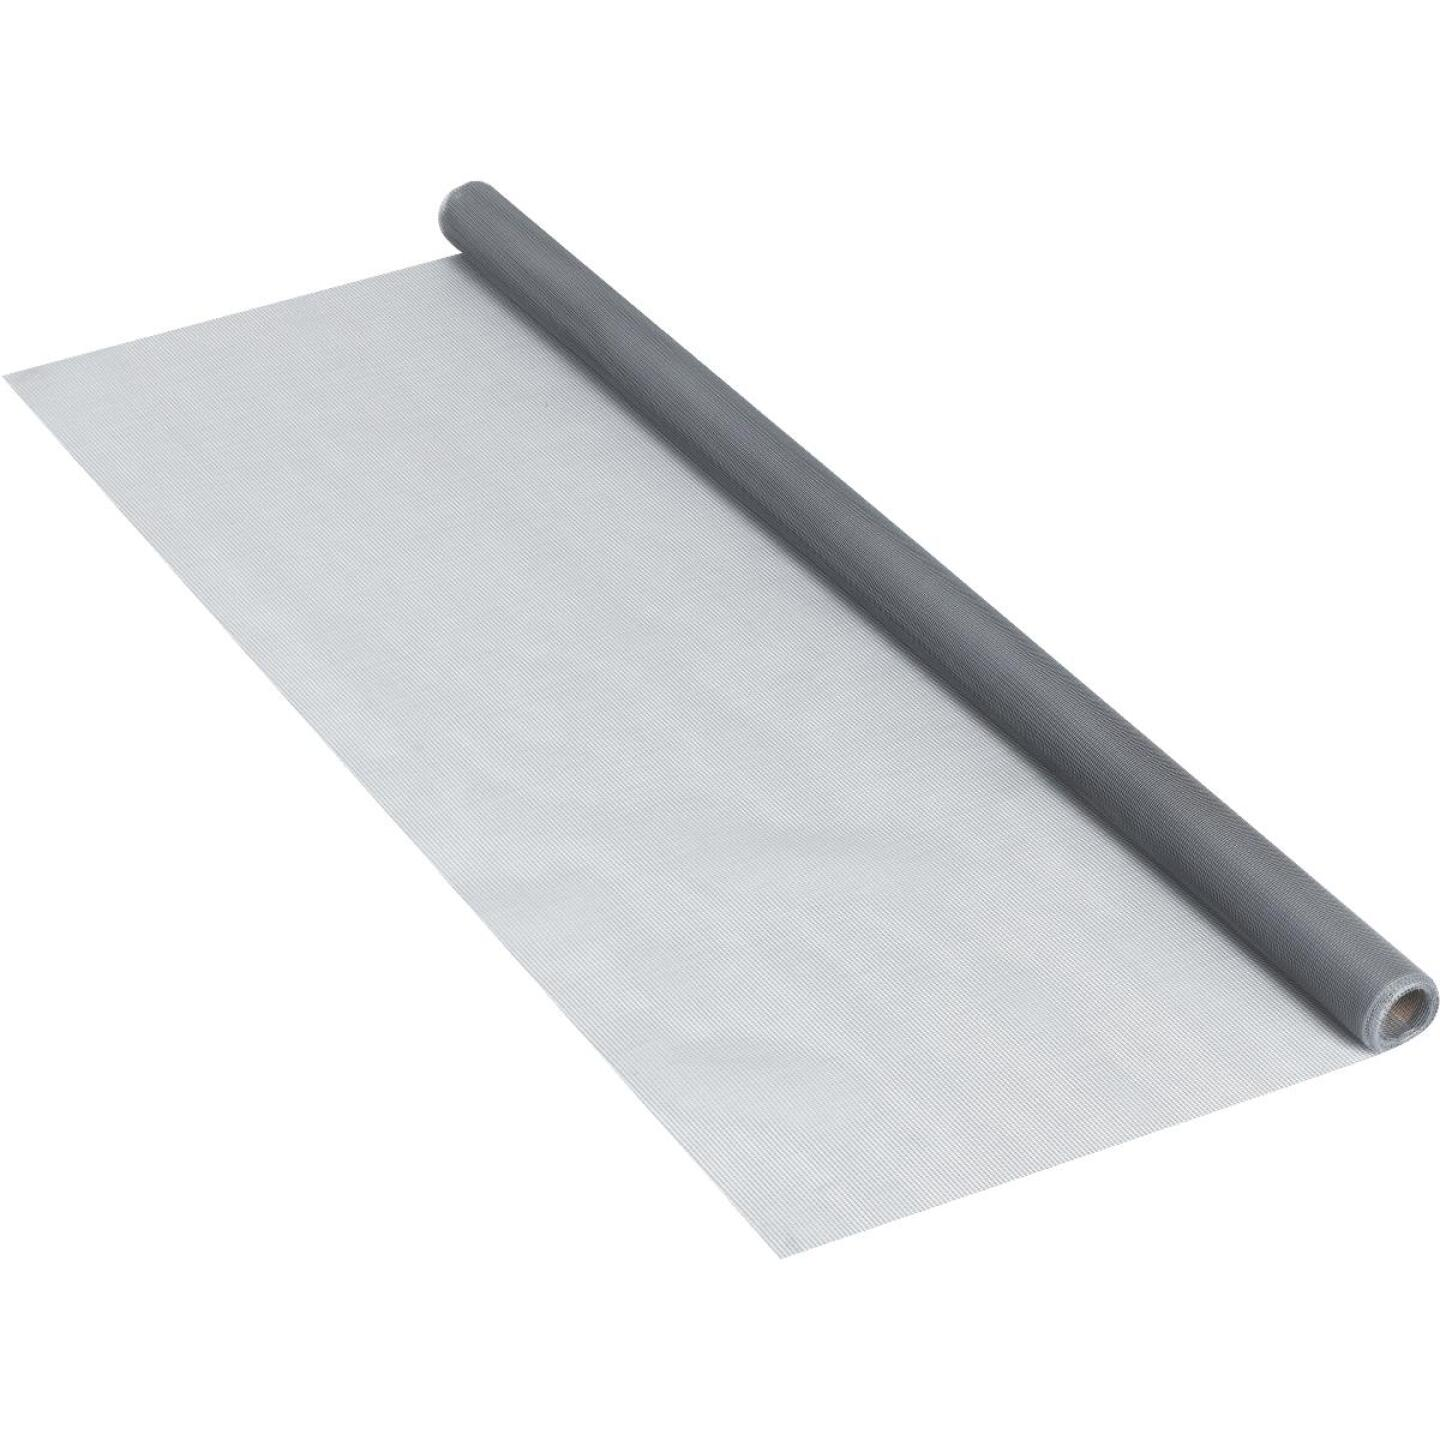 Phifer 48 In. x 84 In. Gray Fiberglass Screen Cloth Ready Rolls Image 3